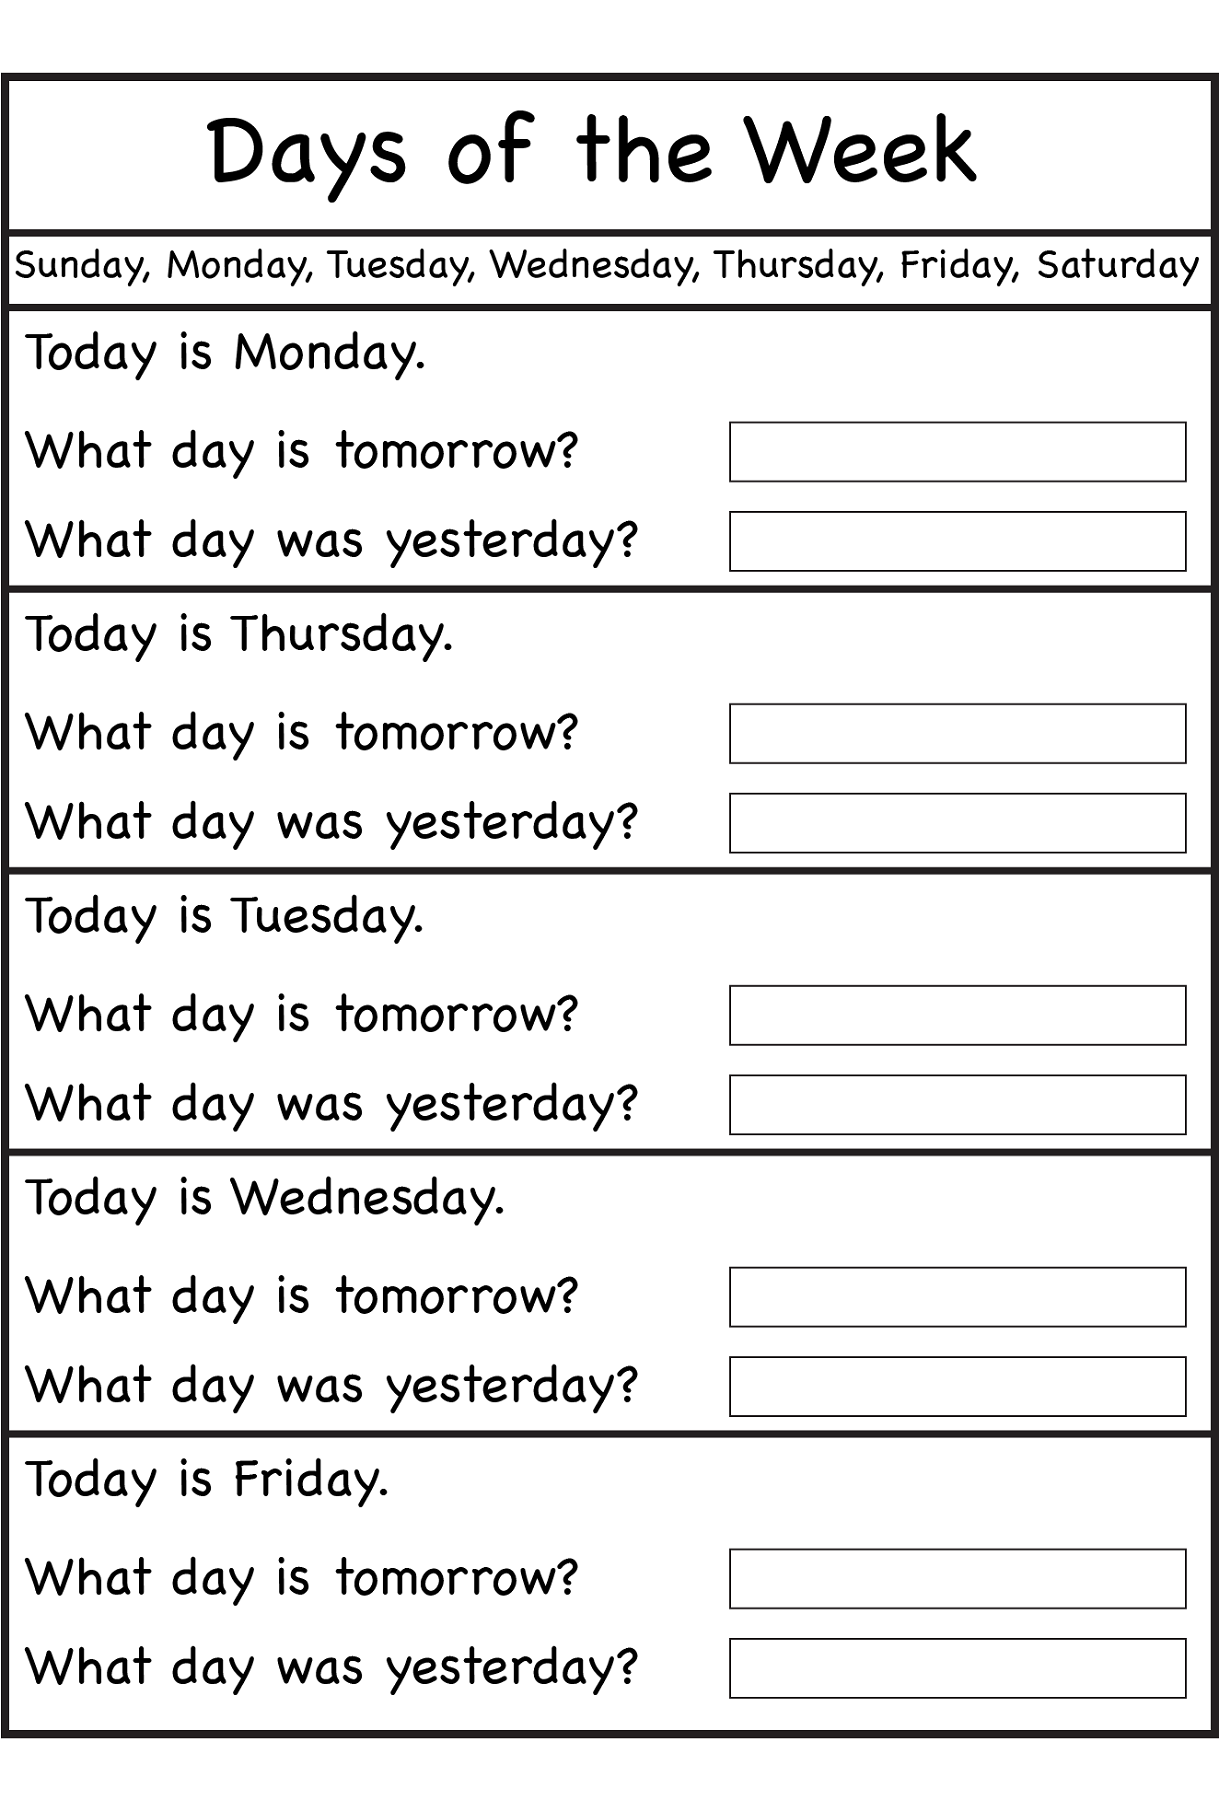 Days of the Week Worksheets (With images) | Teaching ...